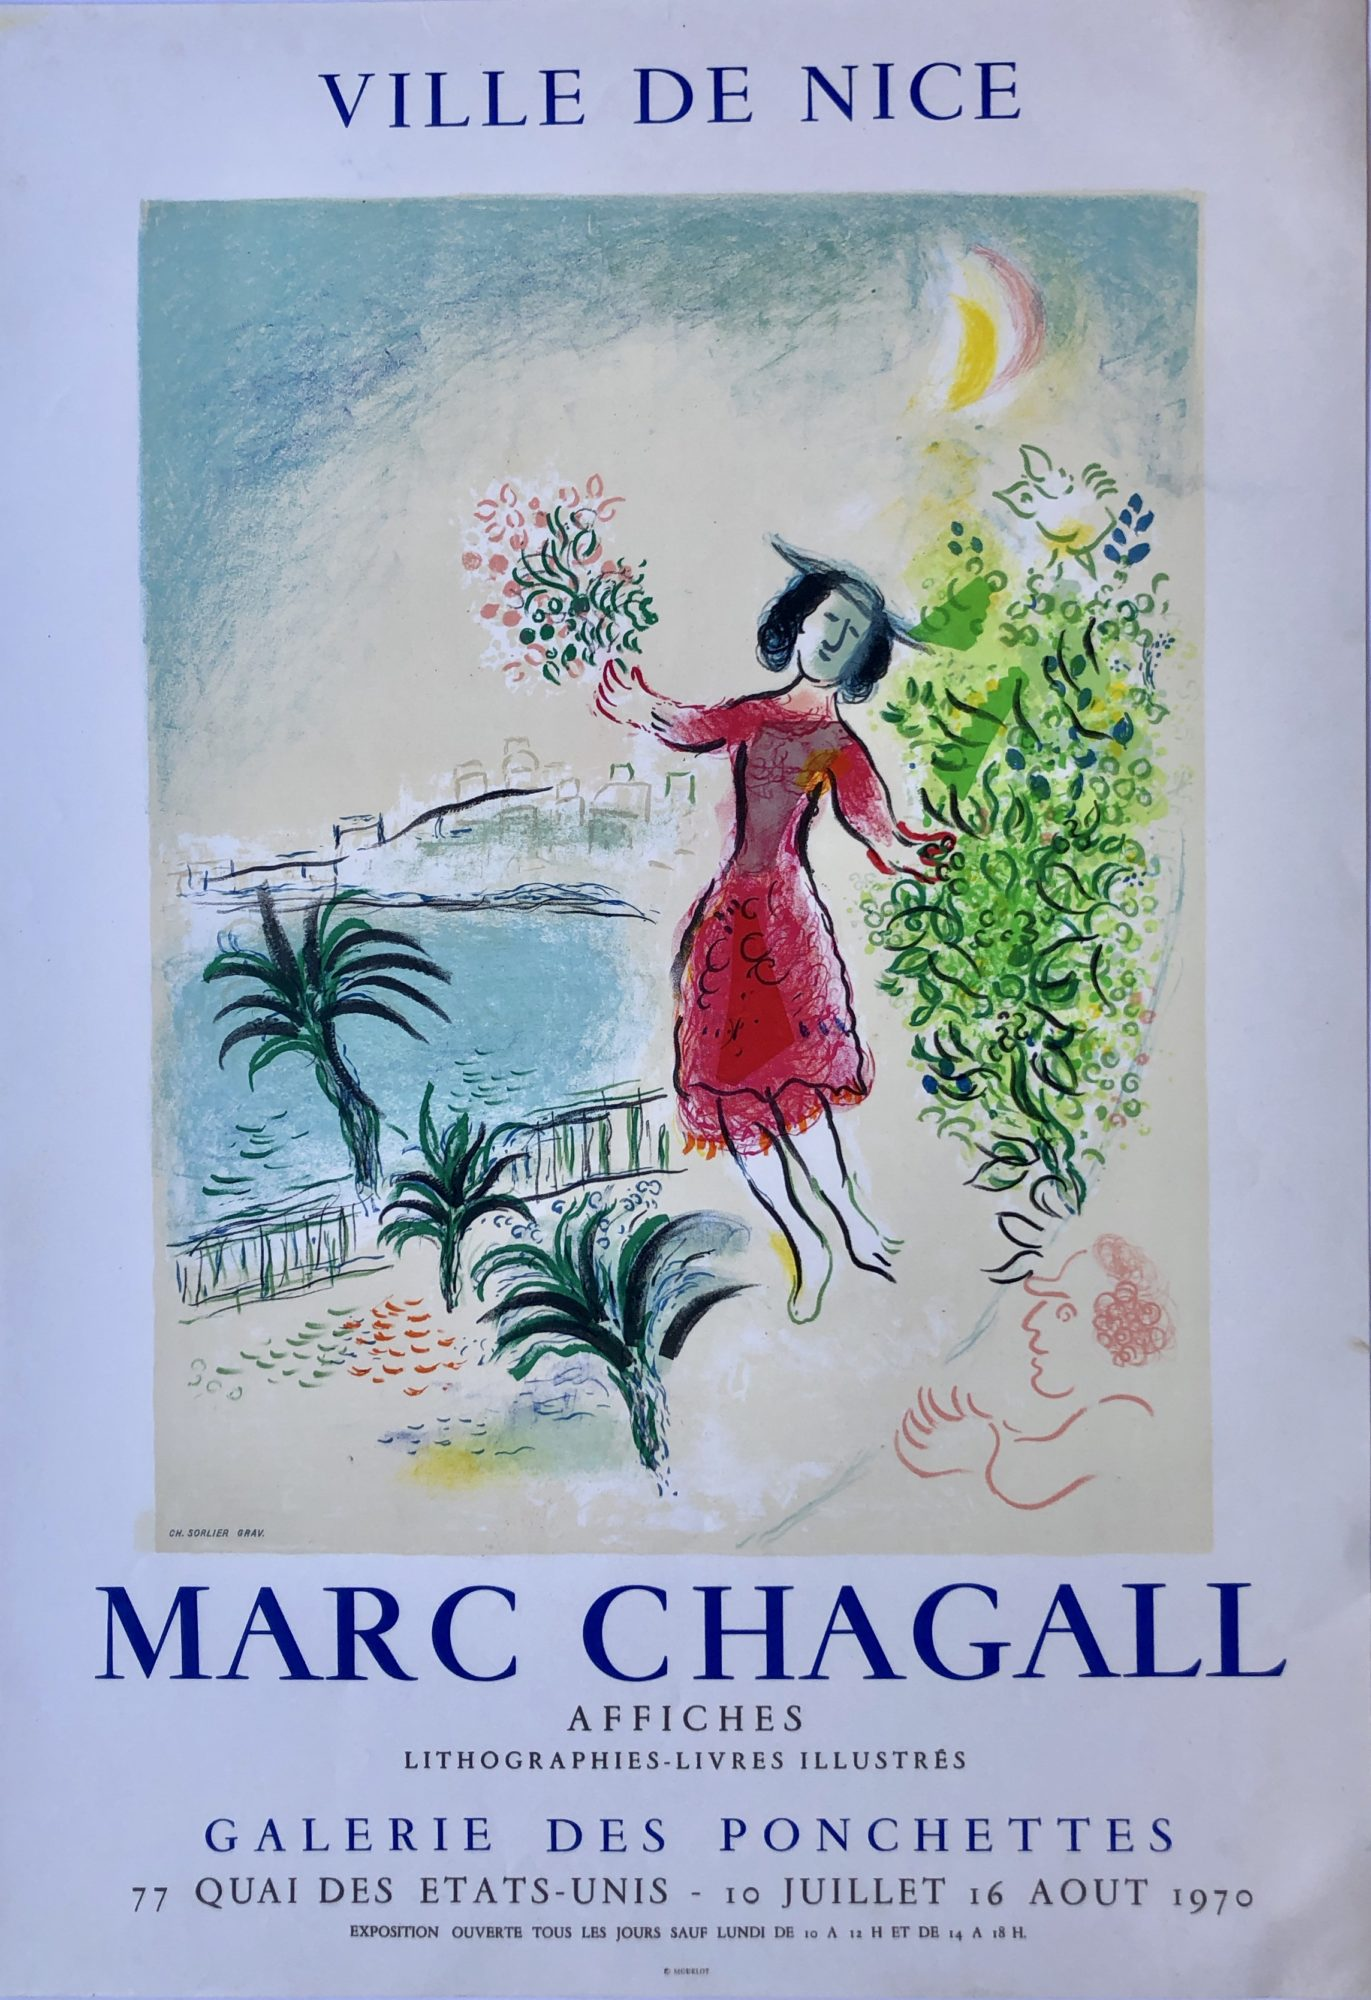 Bay of Nice by Marc Chagall